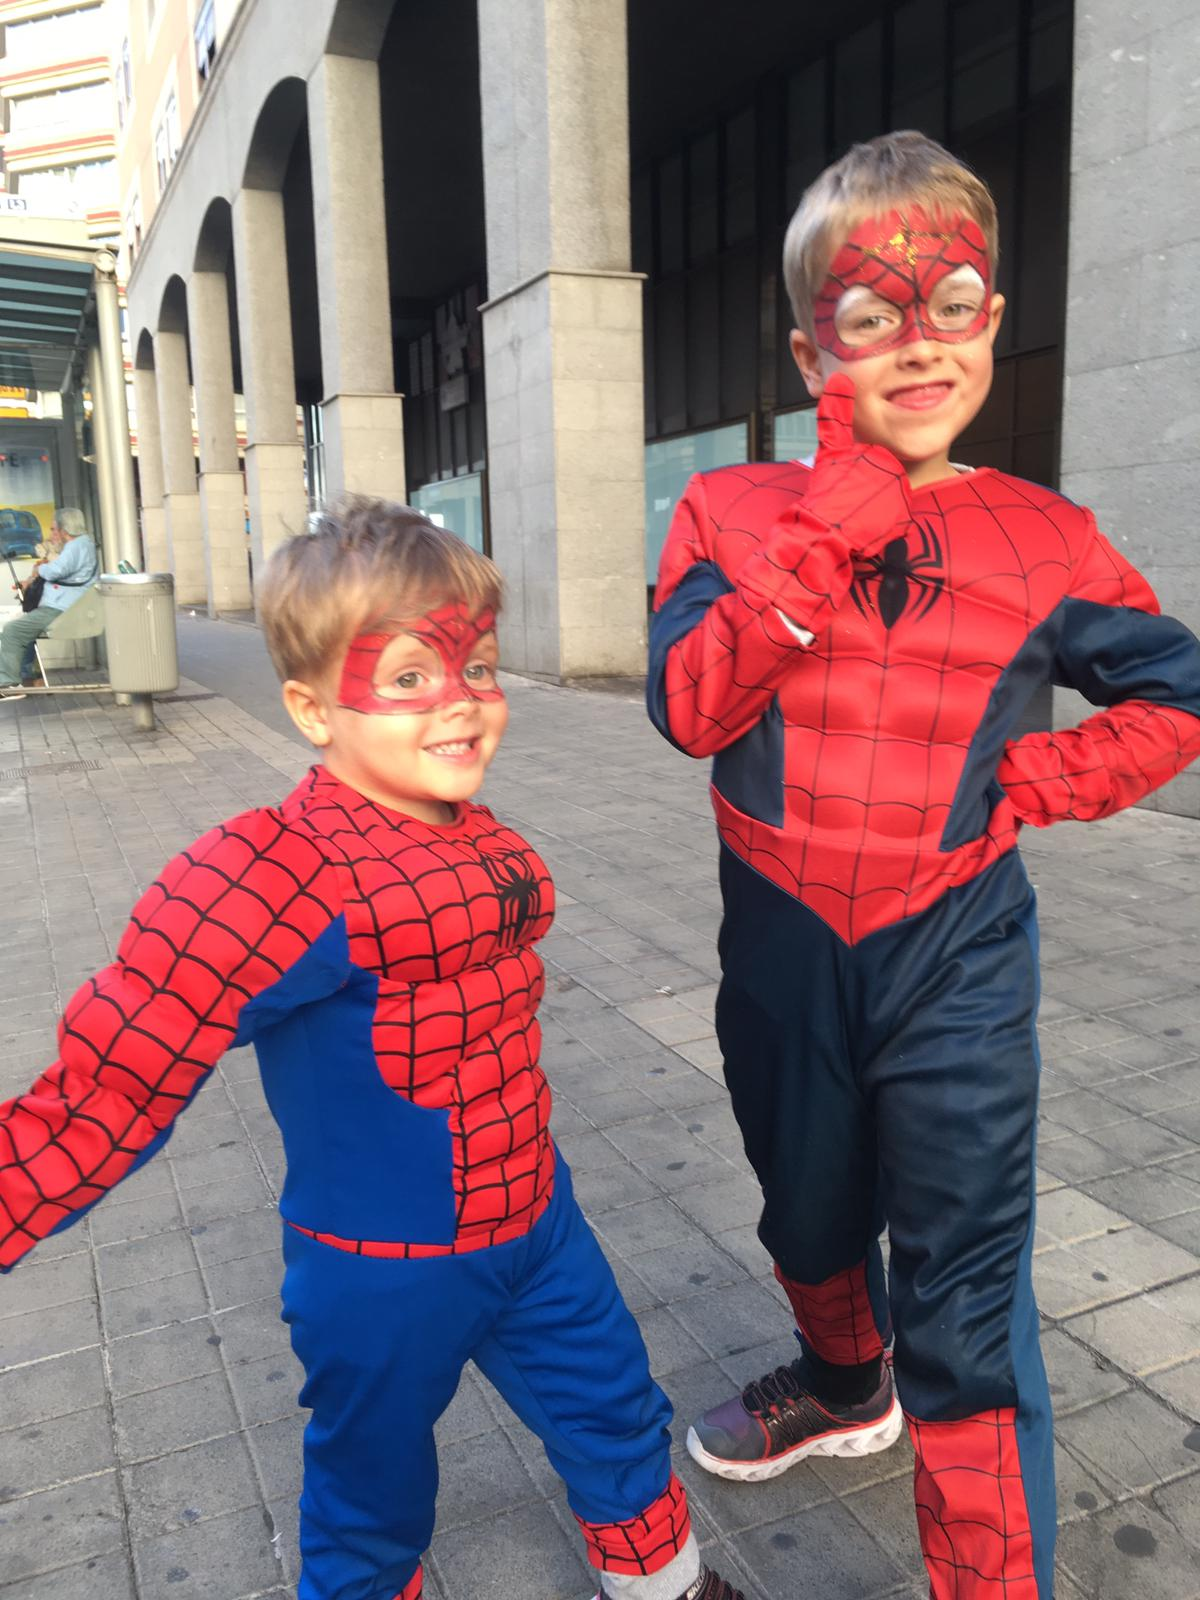 Carnival 2019 - Spiderman!